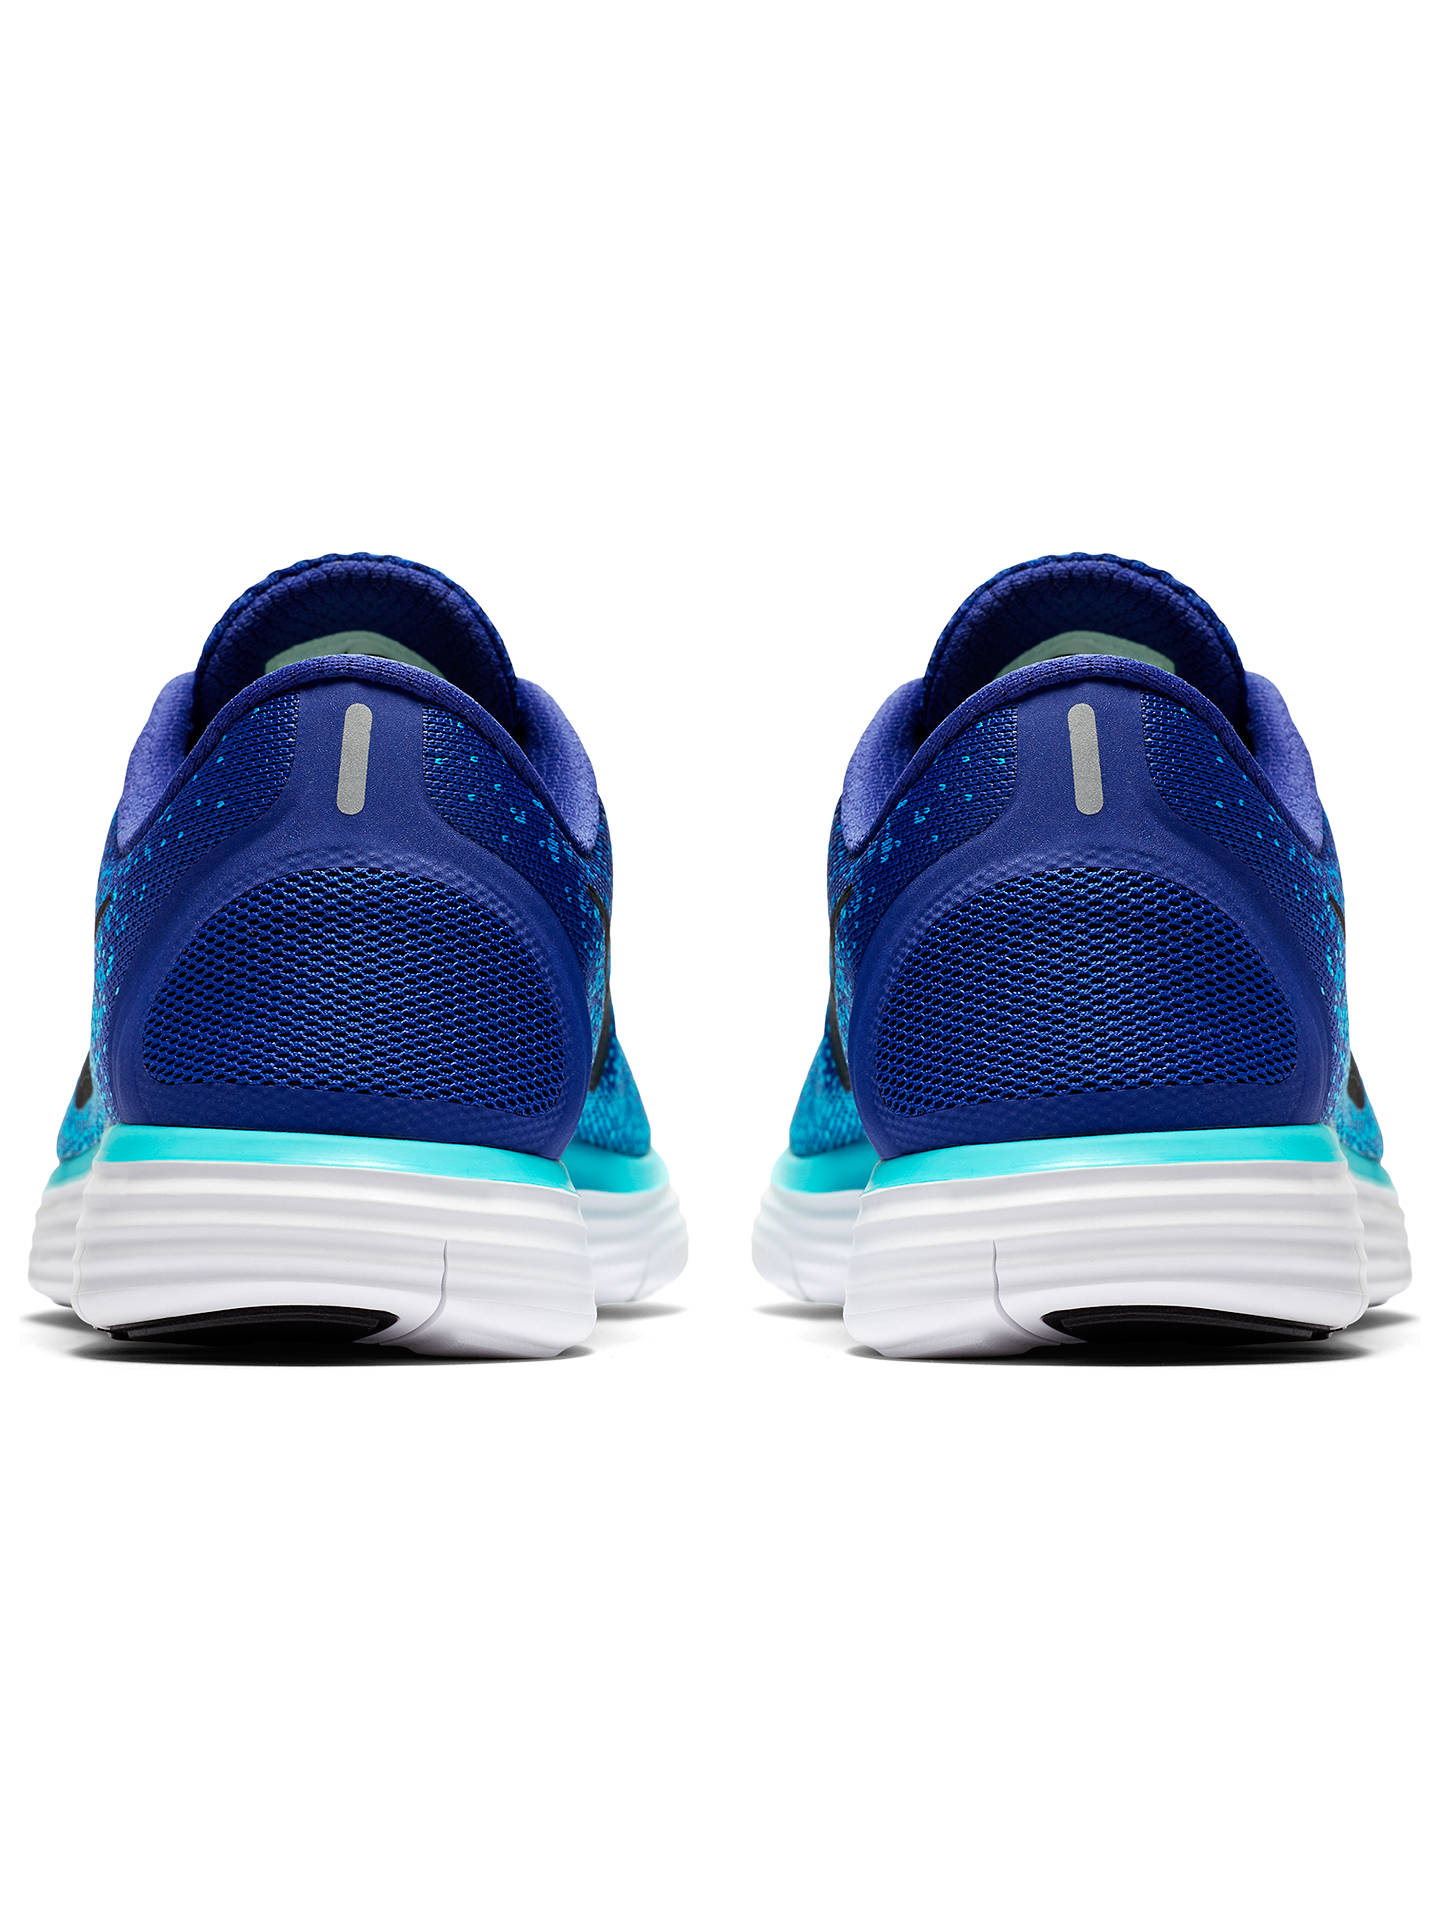 60864e887af75 ... Buy Nike Free RN Distance Men s Running Shoes